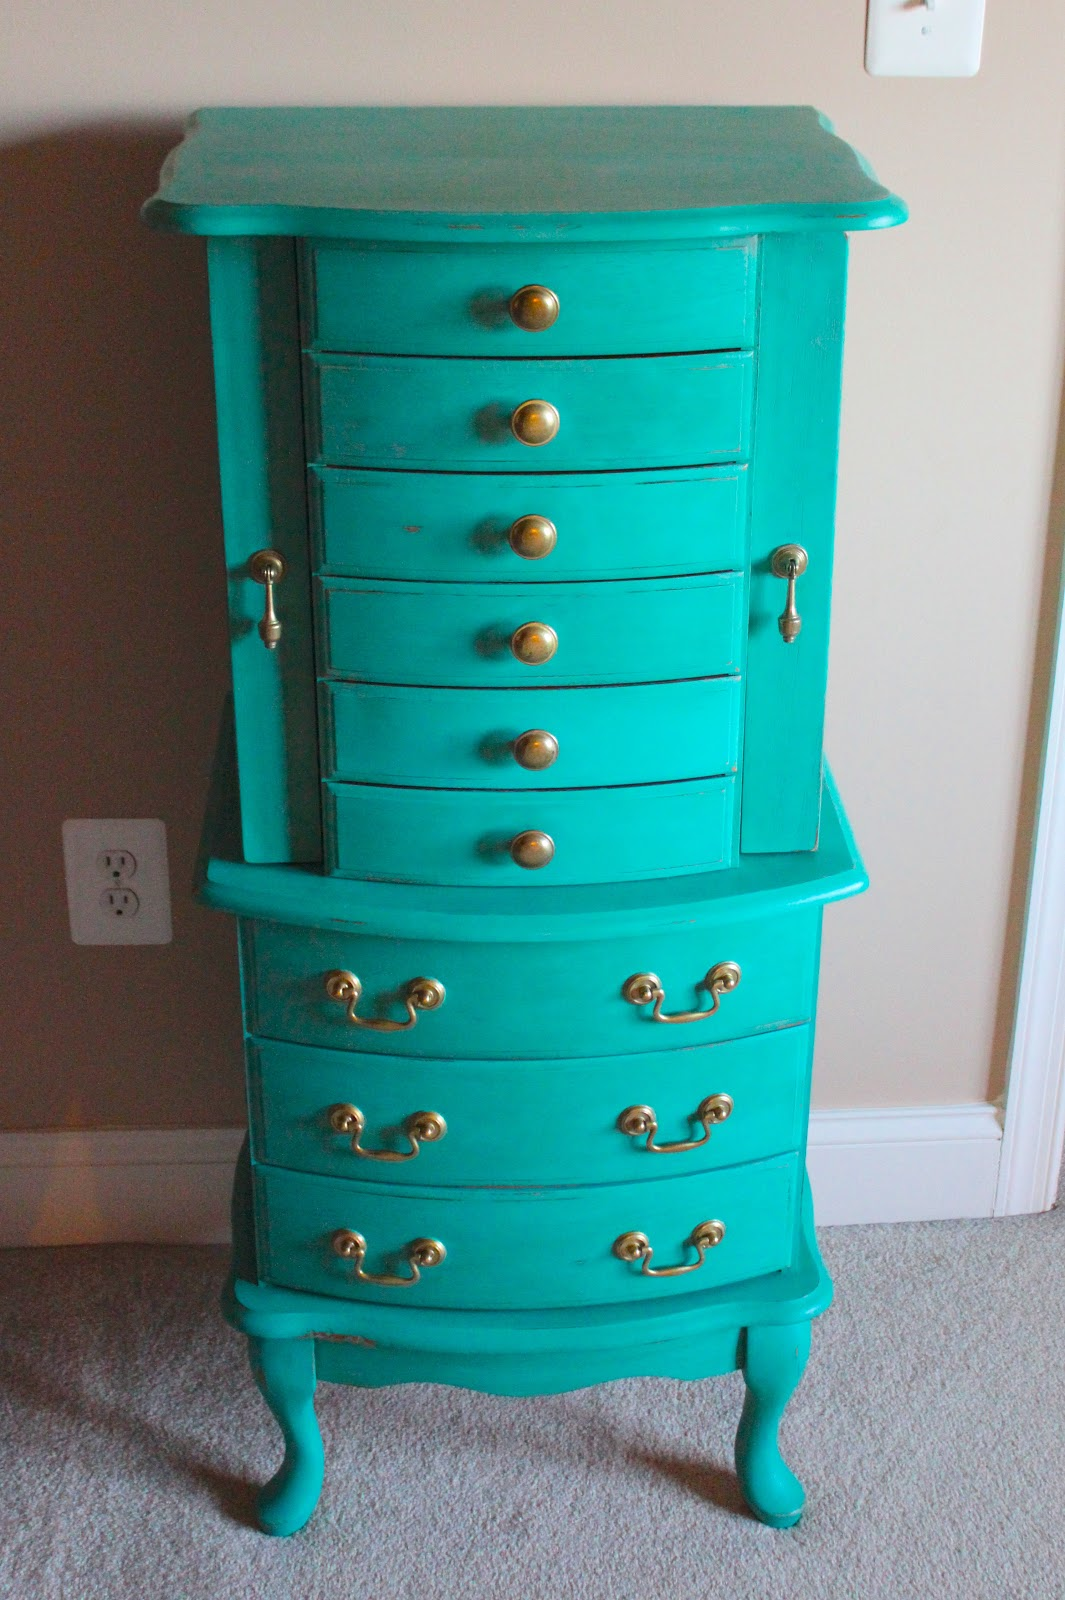 House of FabForLess: Turquoise Jewelry Armoire!